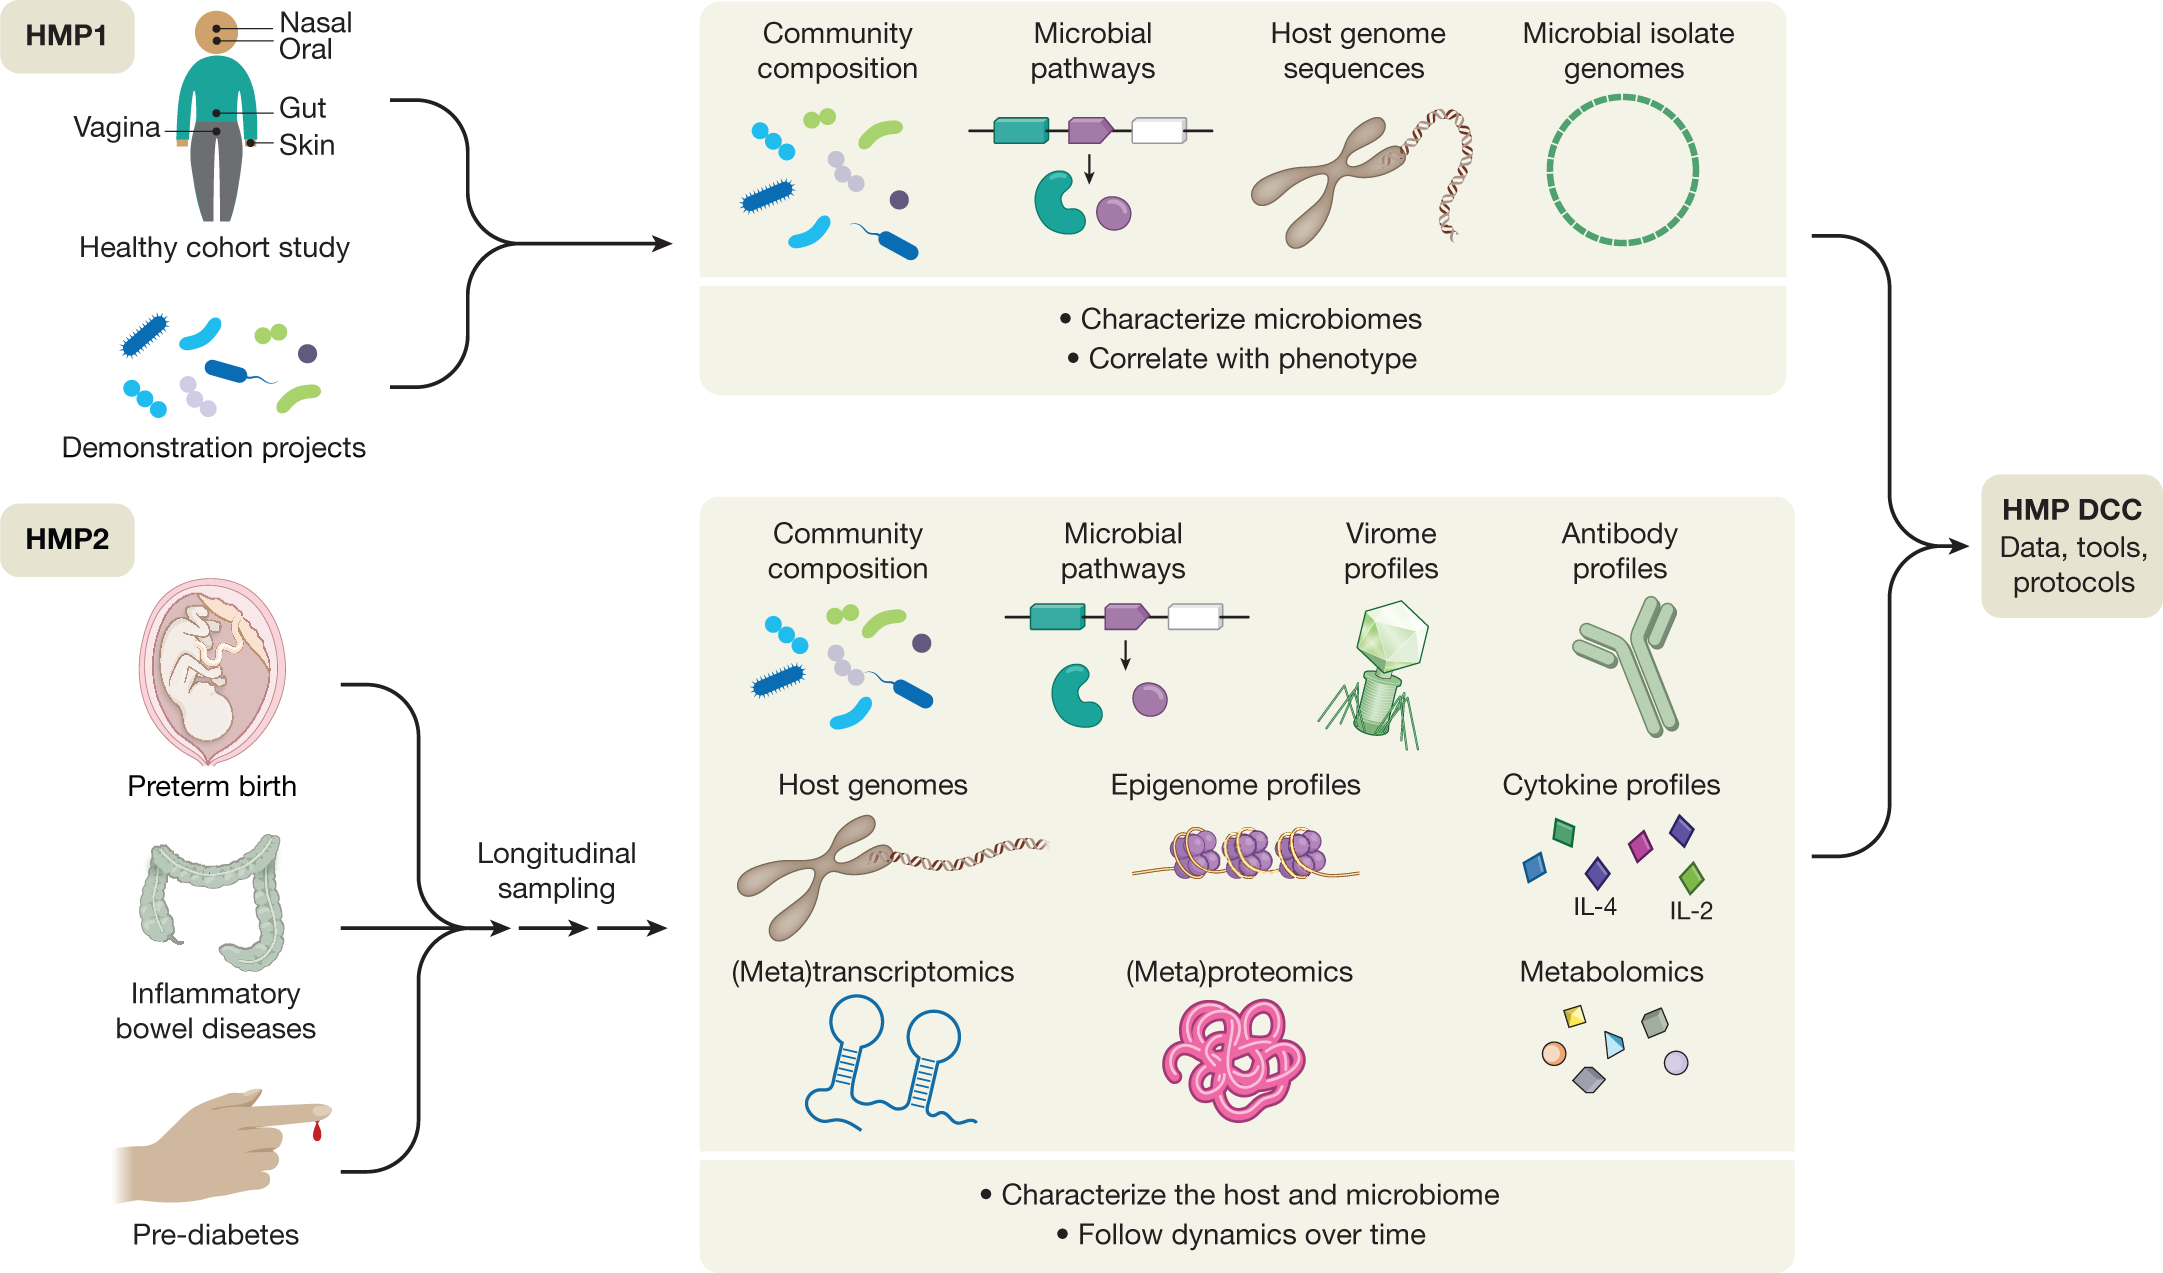 The Integrative Human Microbiome Project | Nature